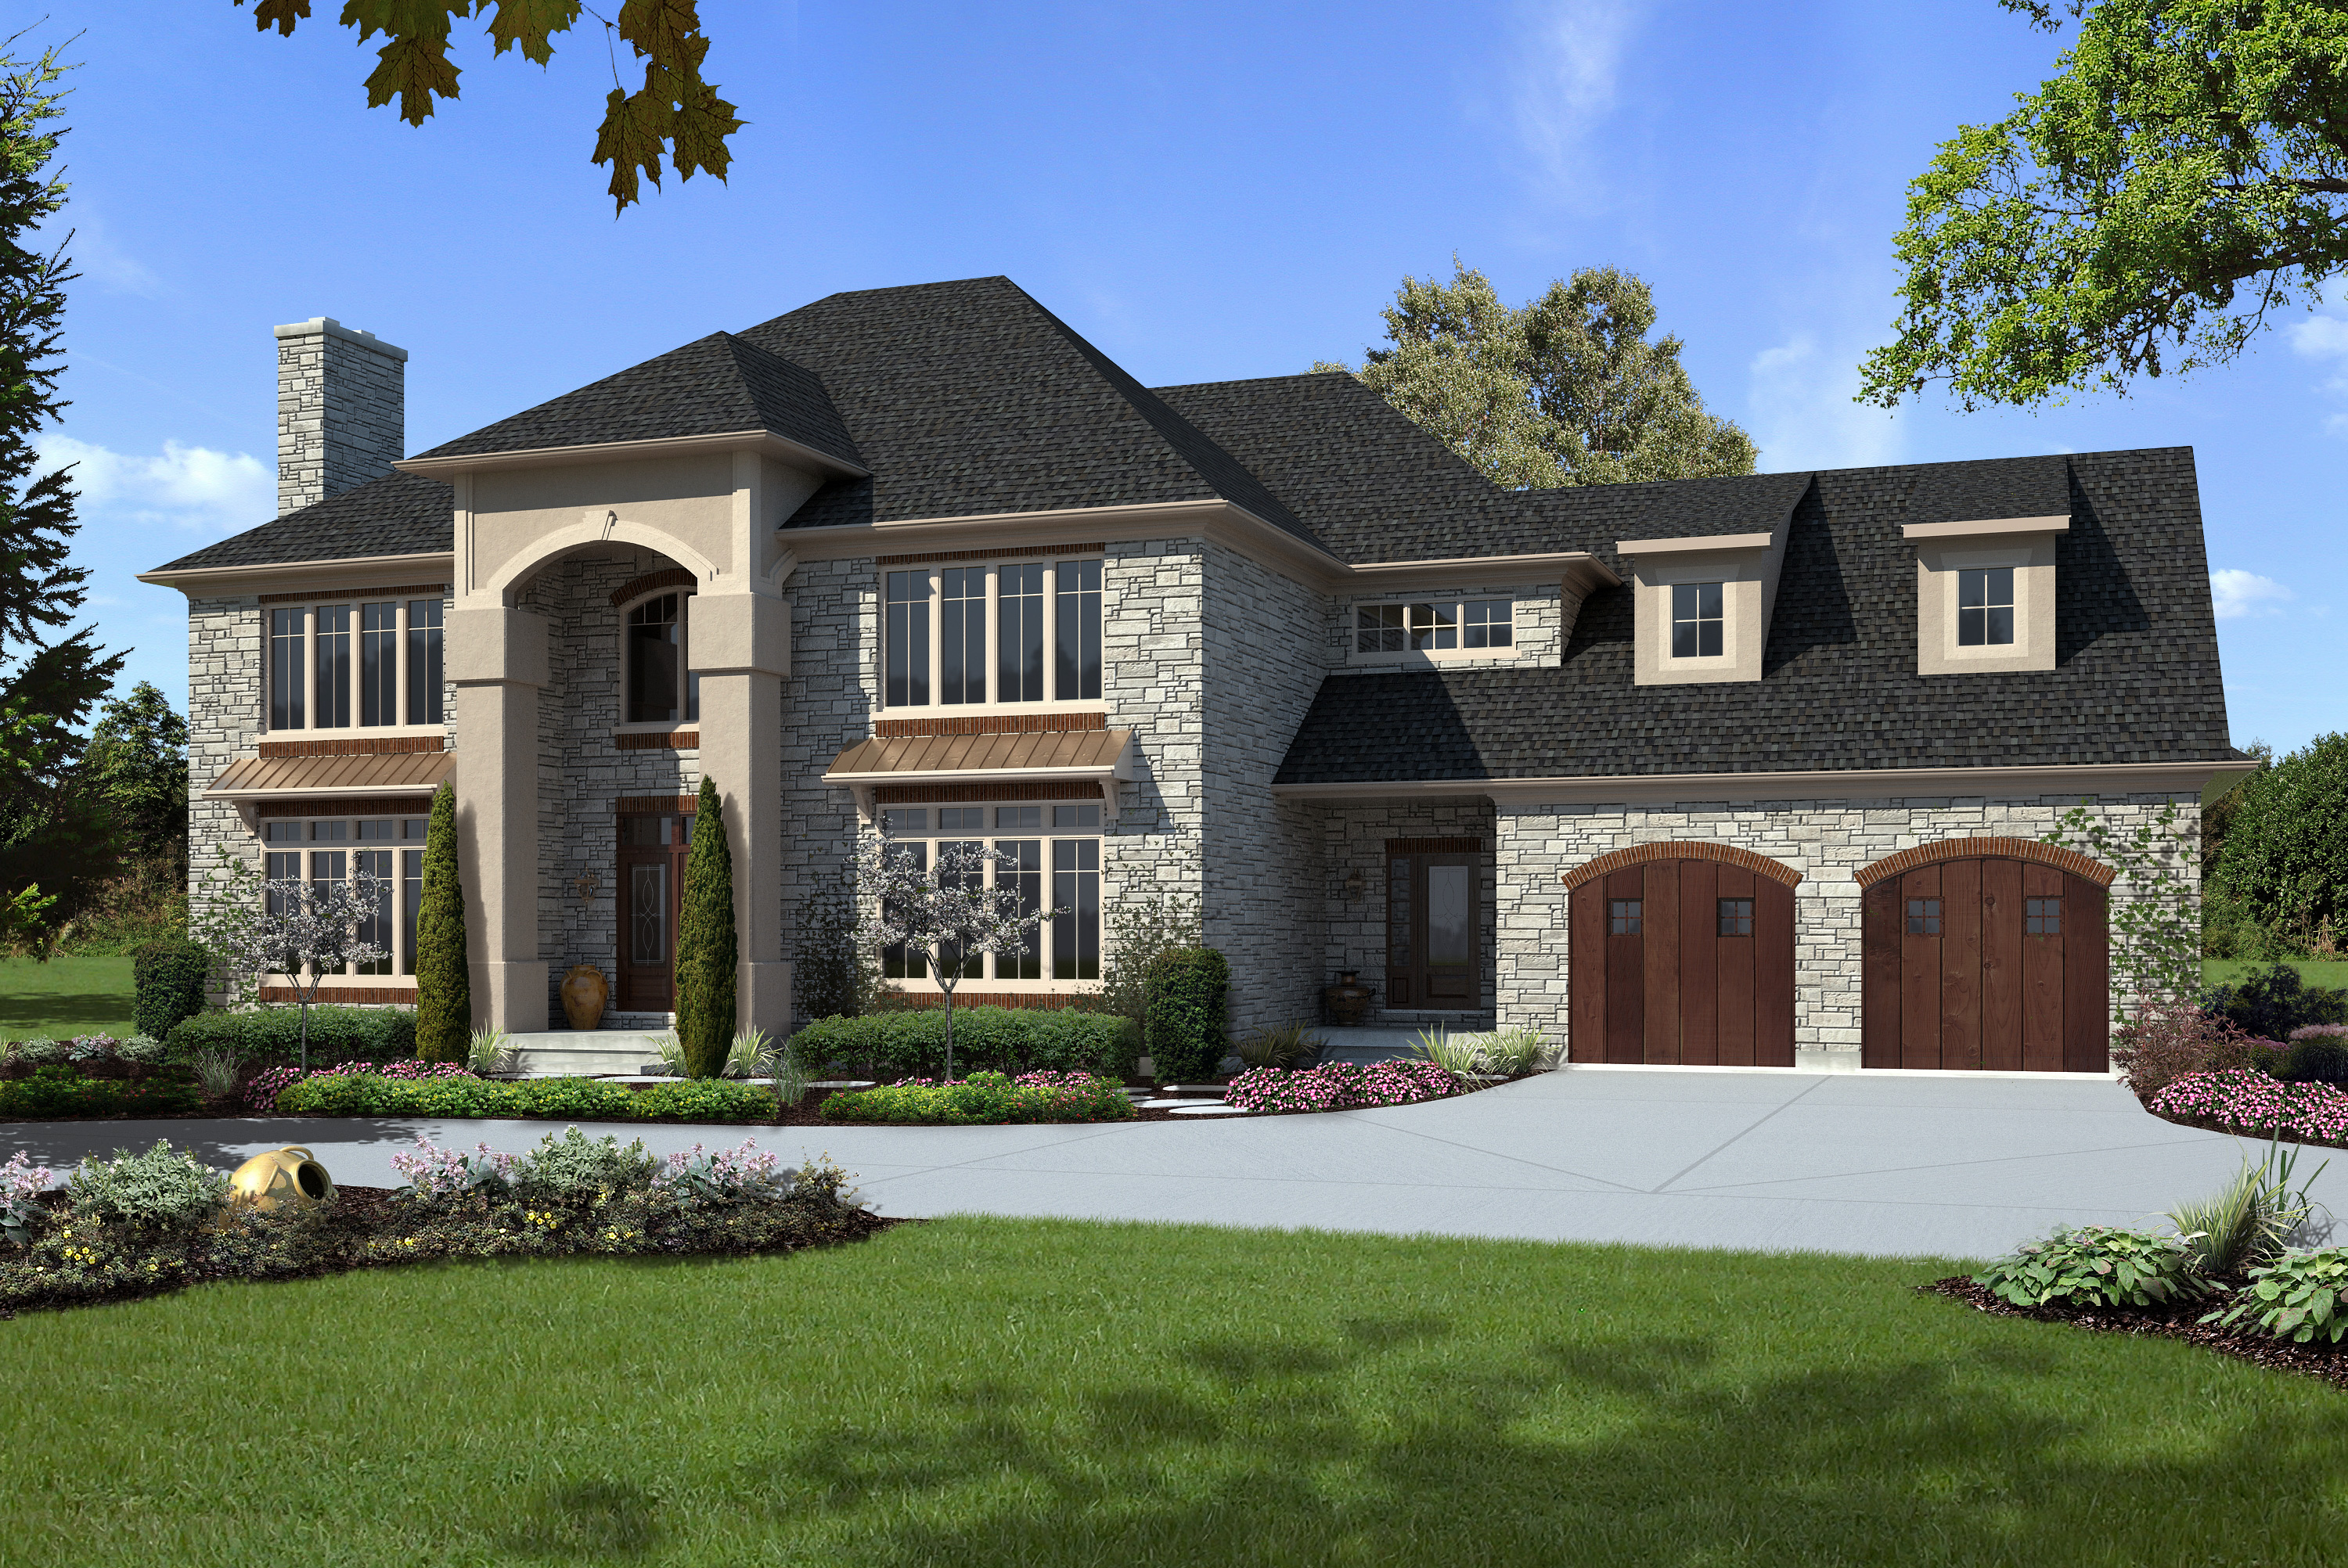 Custom home designs custom house plans custom home plans custom floor plans at Custom home designs